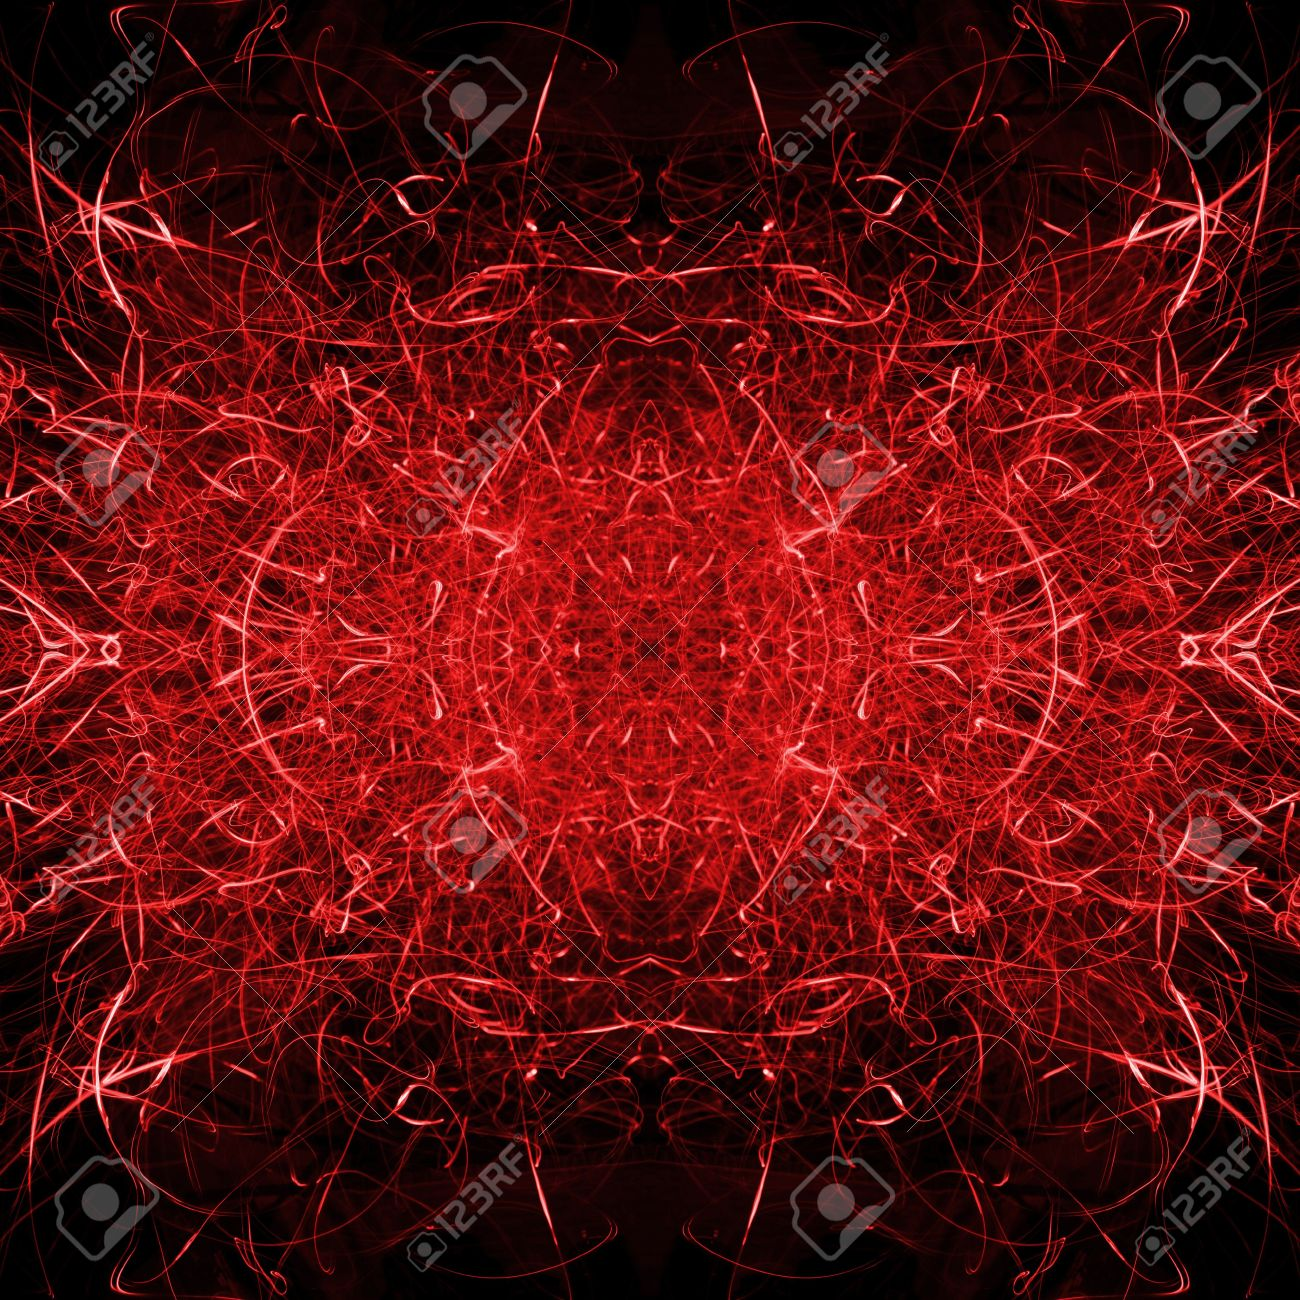 Fire Red Hot Flames And Sparks Background Texture With Satanic